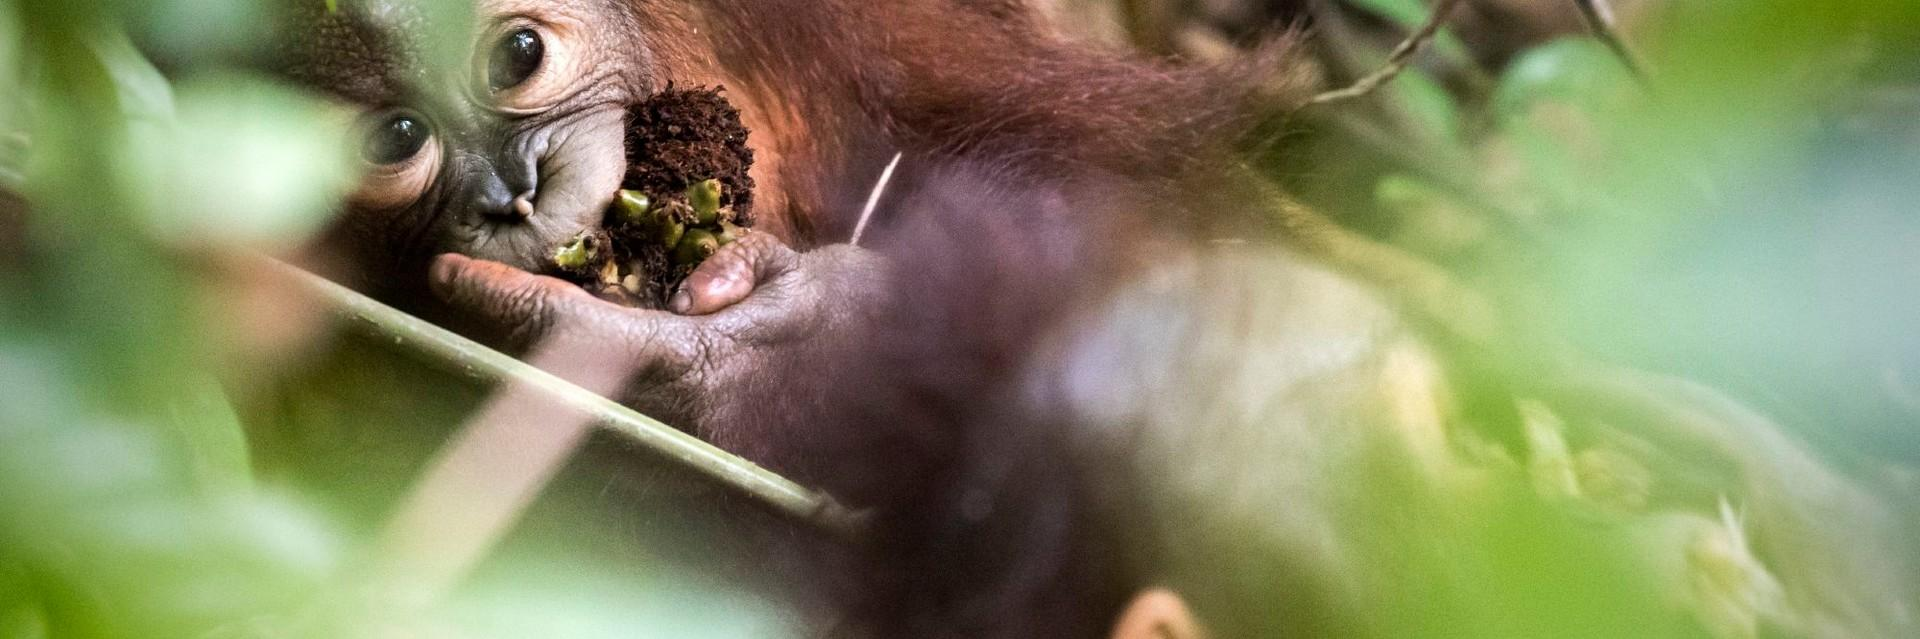 Orphan orangutan playing in the forest